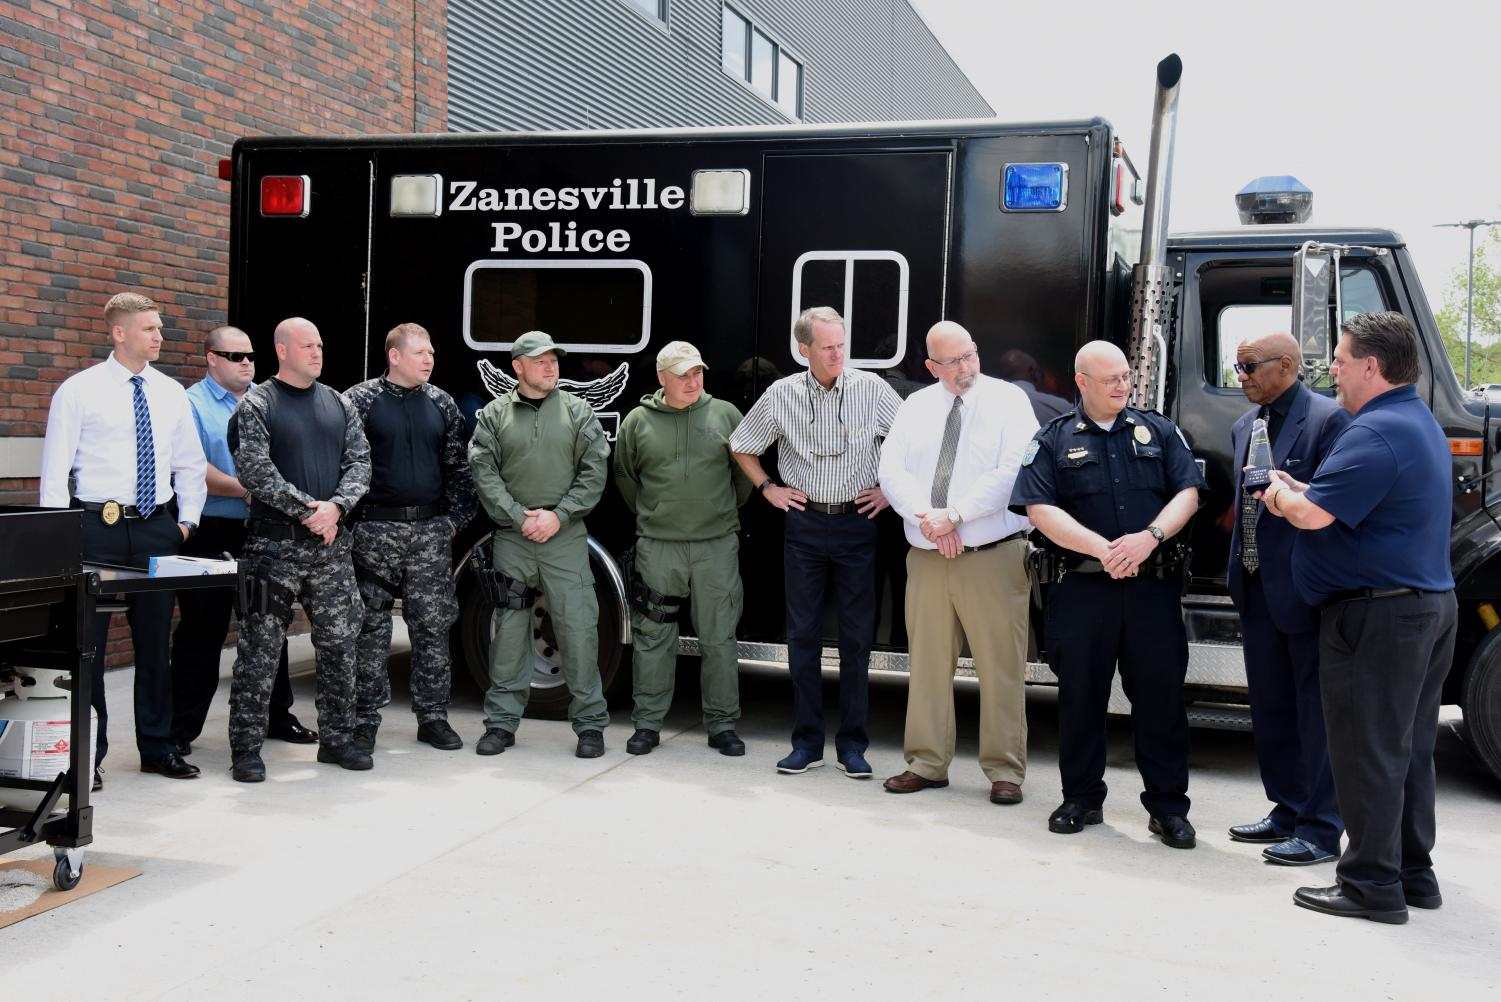 Mark Falls presents an award members of the Zanesville Police Department, along with the City of Zanesville Mayor and Public Safety Director.